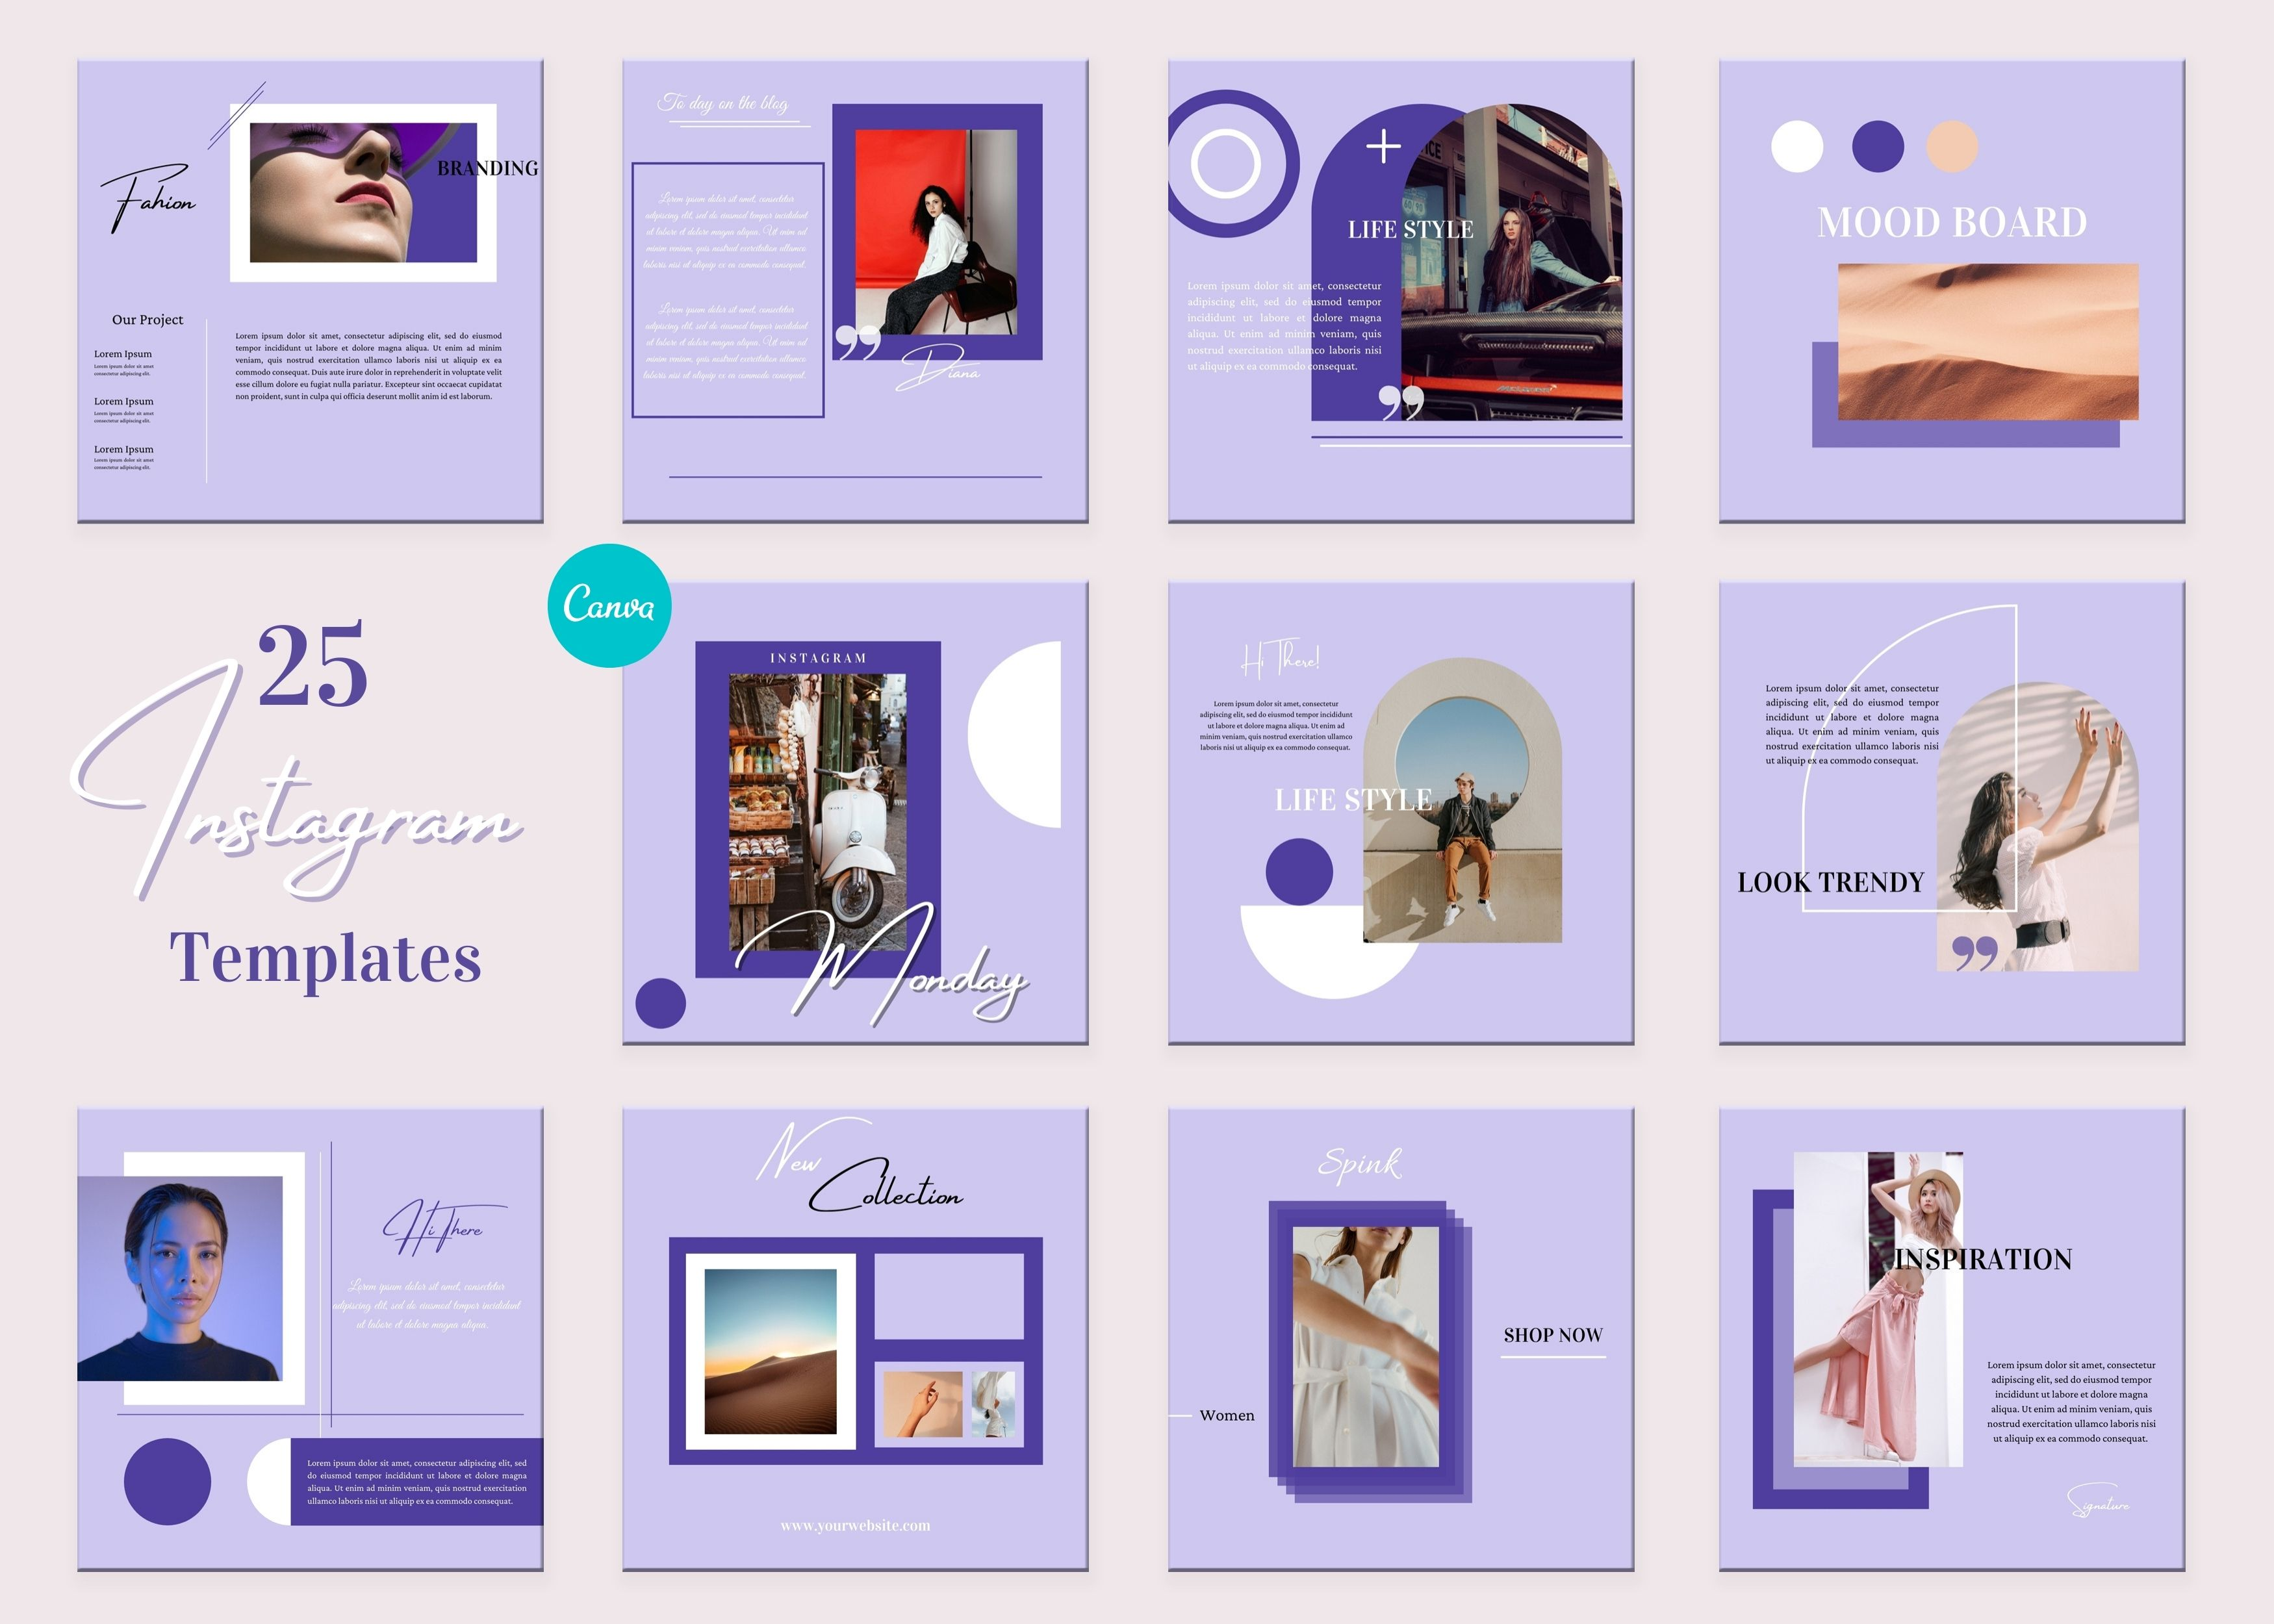 Small Business Templates | Instagram Posts | Brand